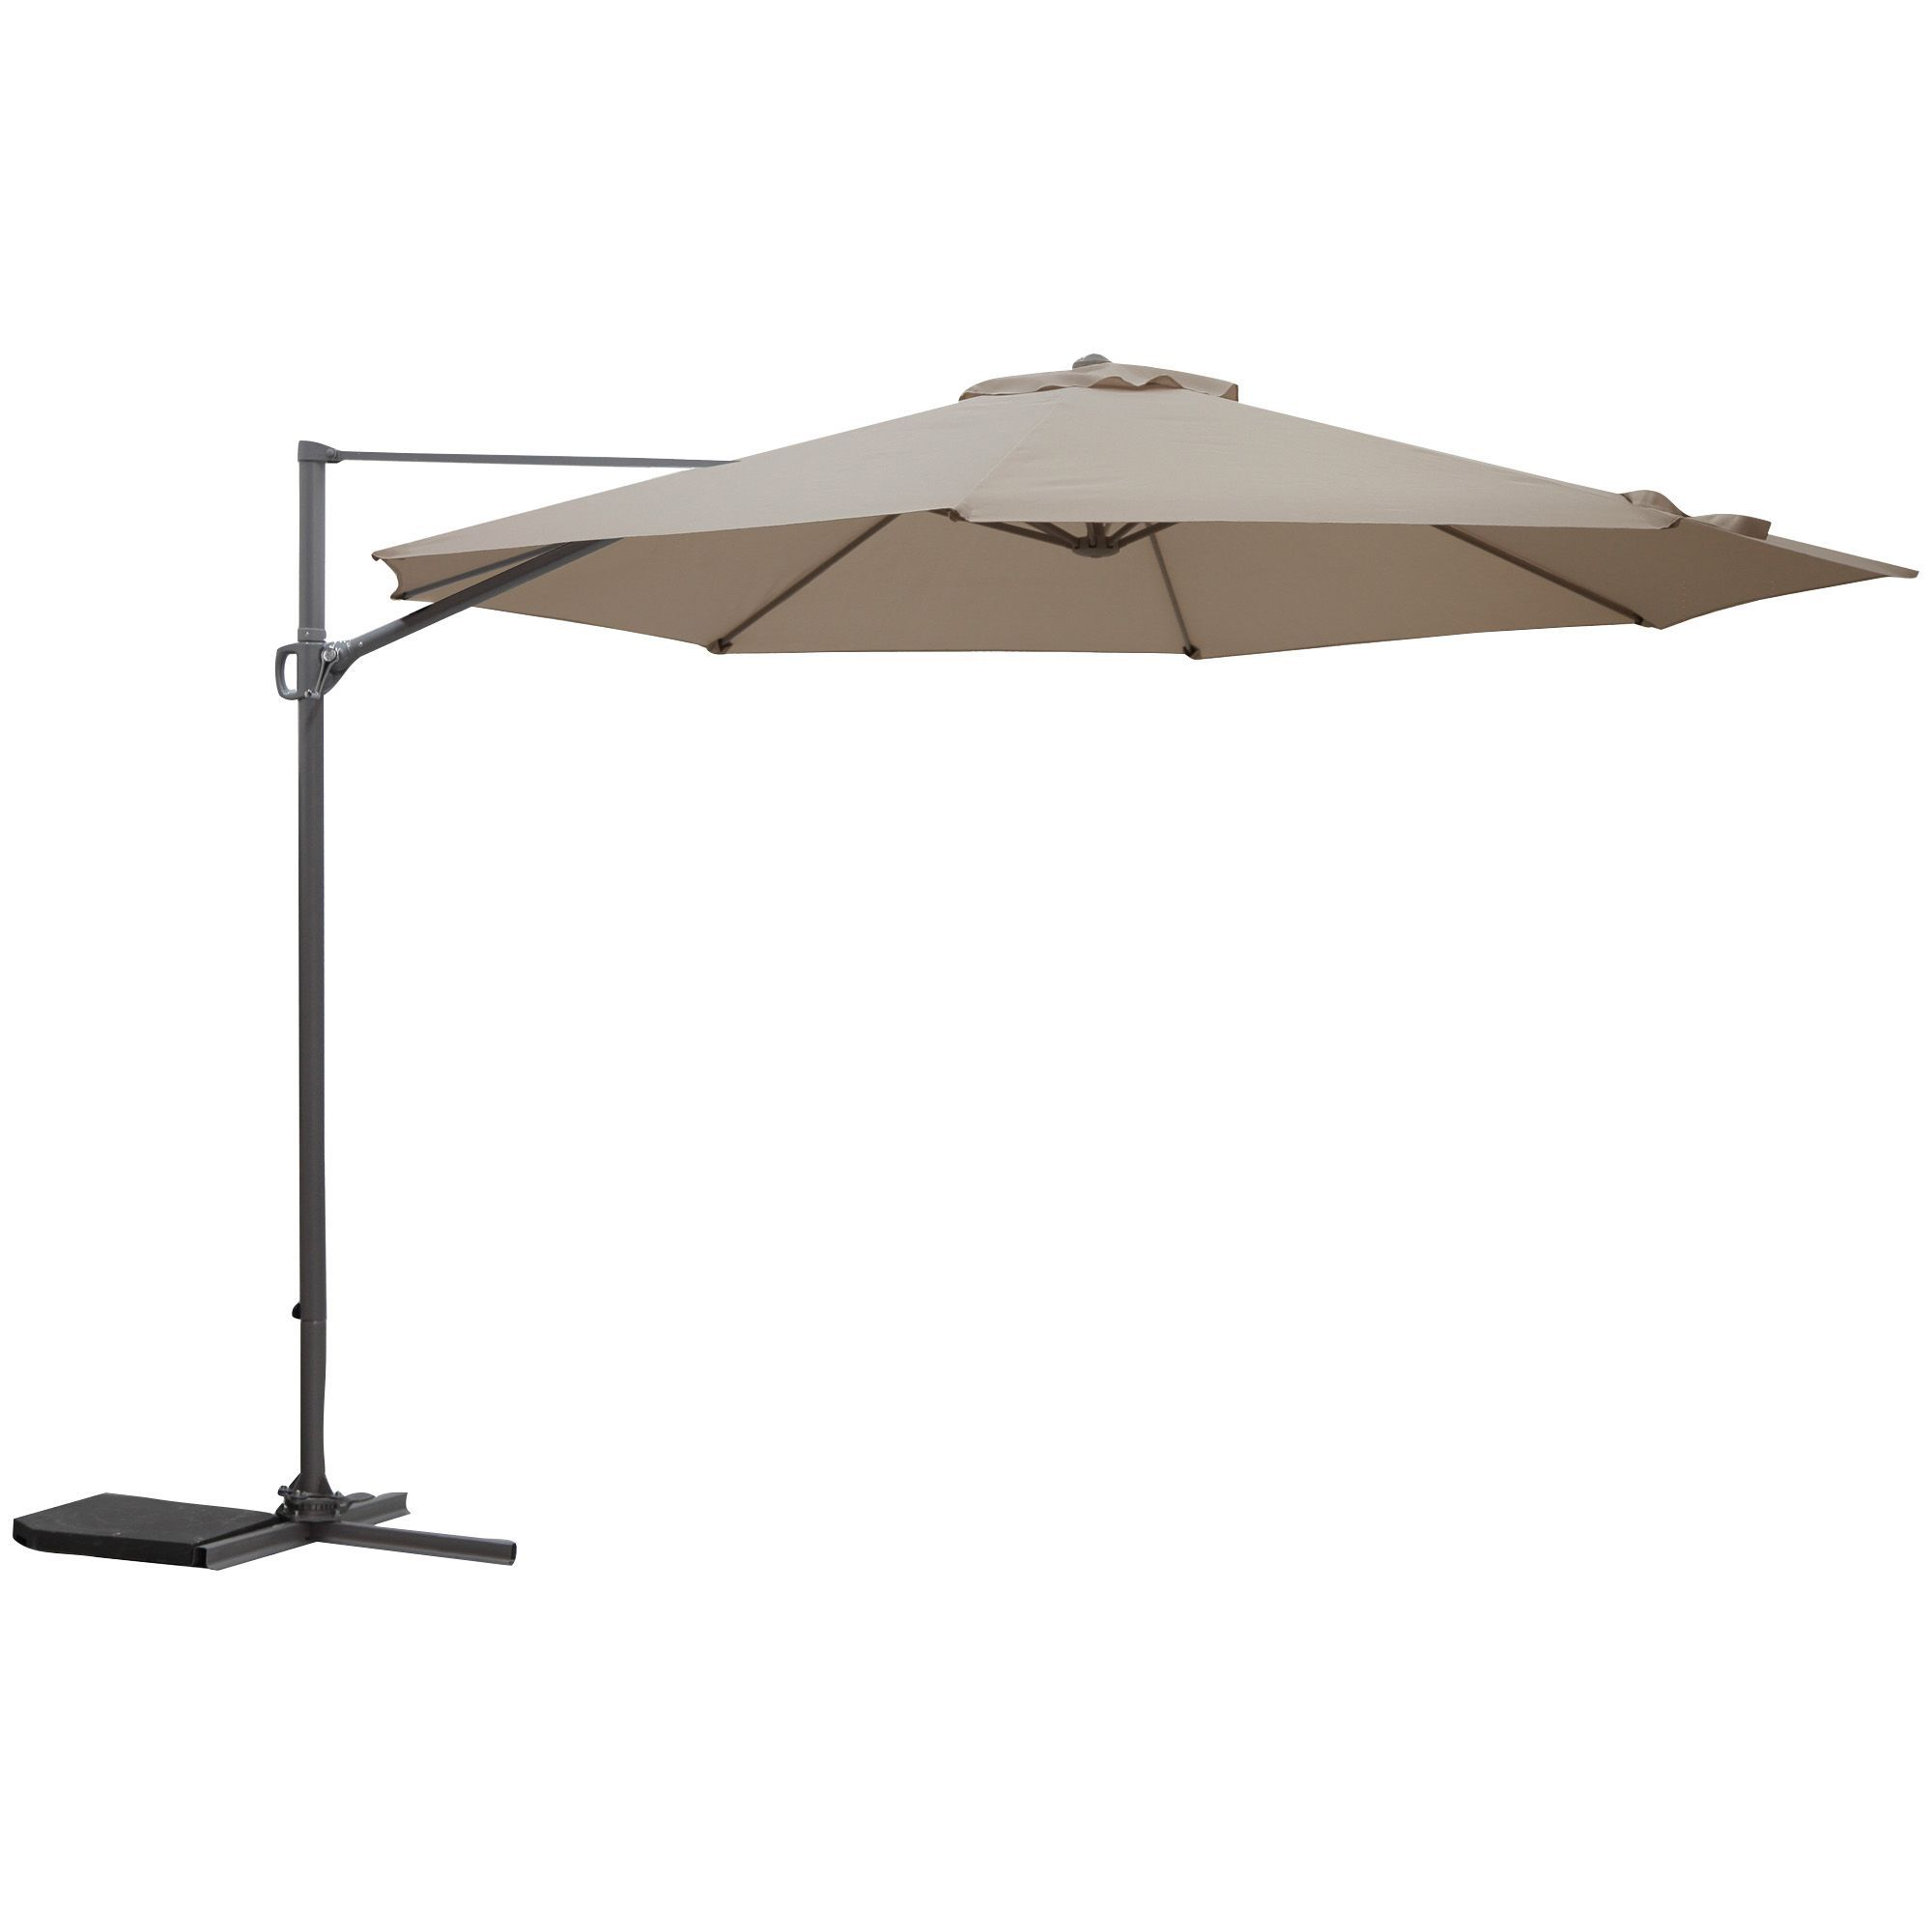 Parasol Taupe Mallorca 3 5m Brown Taupe Overhanging Parasol Rooms Diy At